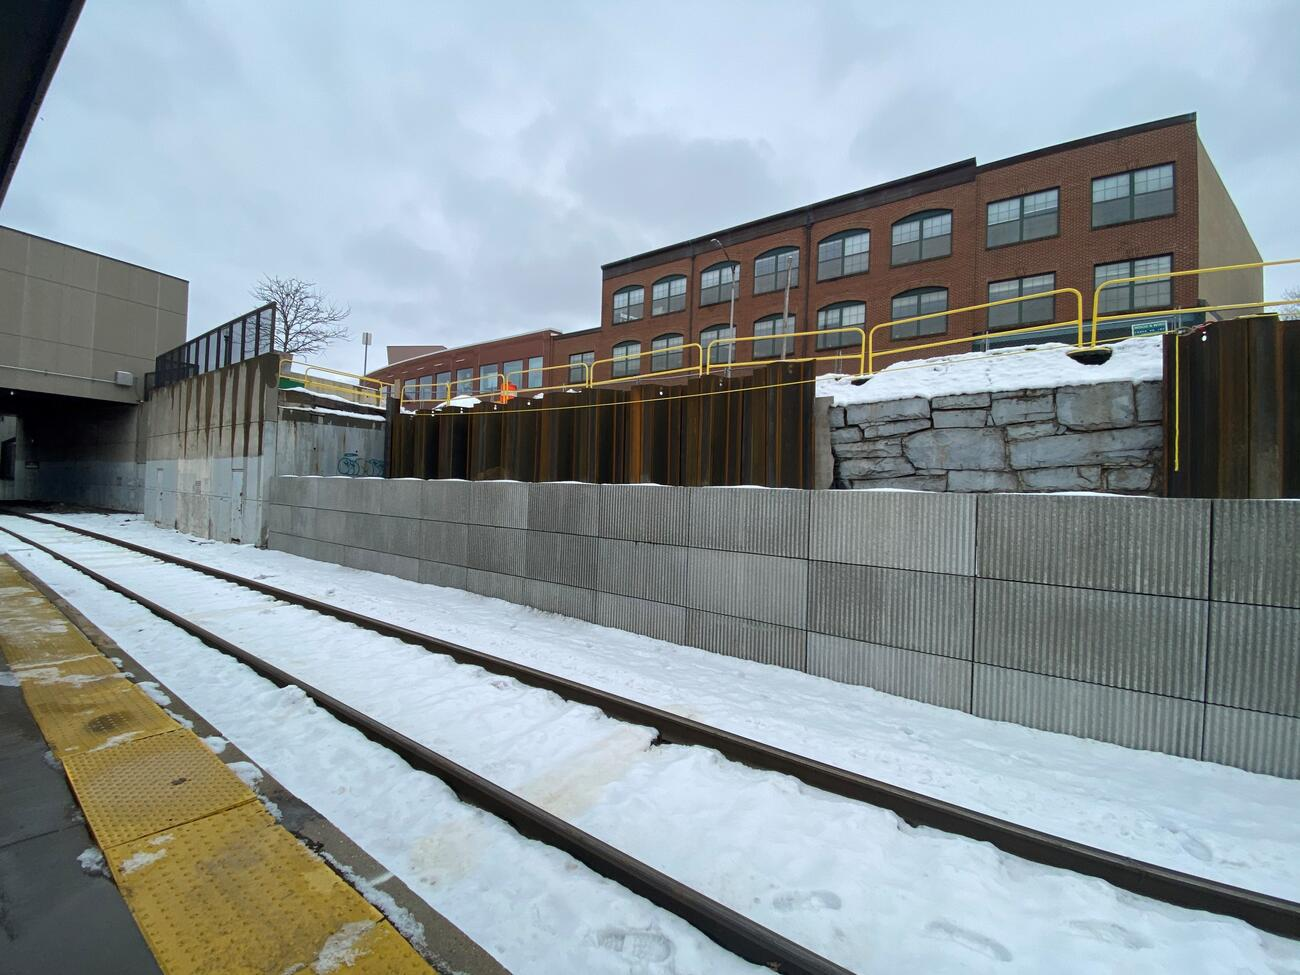 A view of the t-wall construction from the station platform. It's a gray day and the tracks are covered in snow